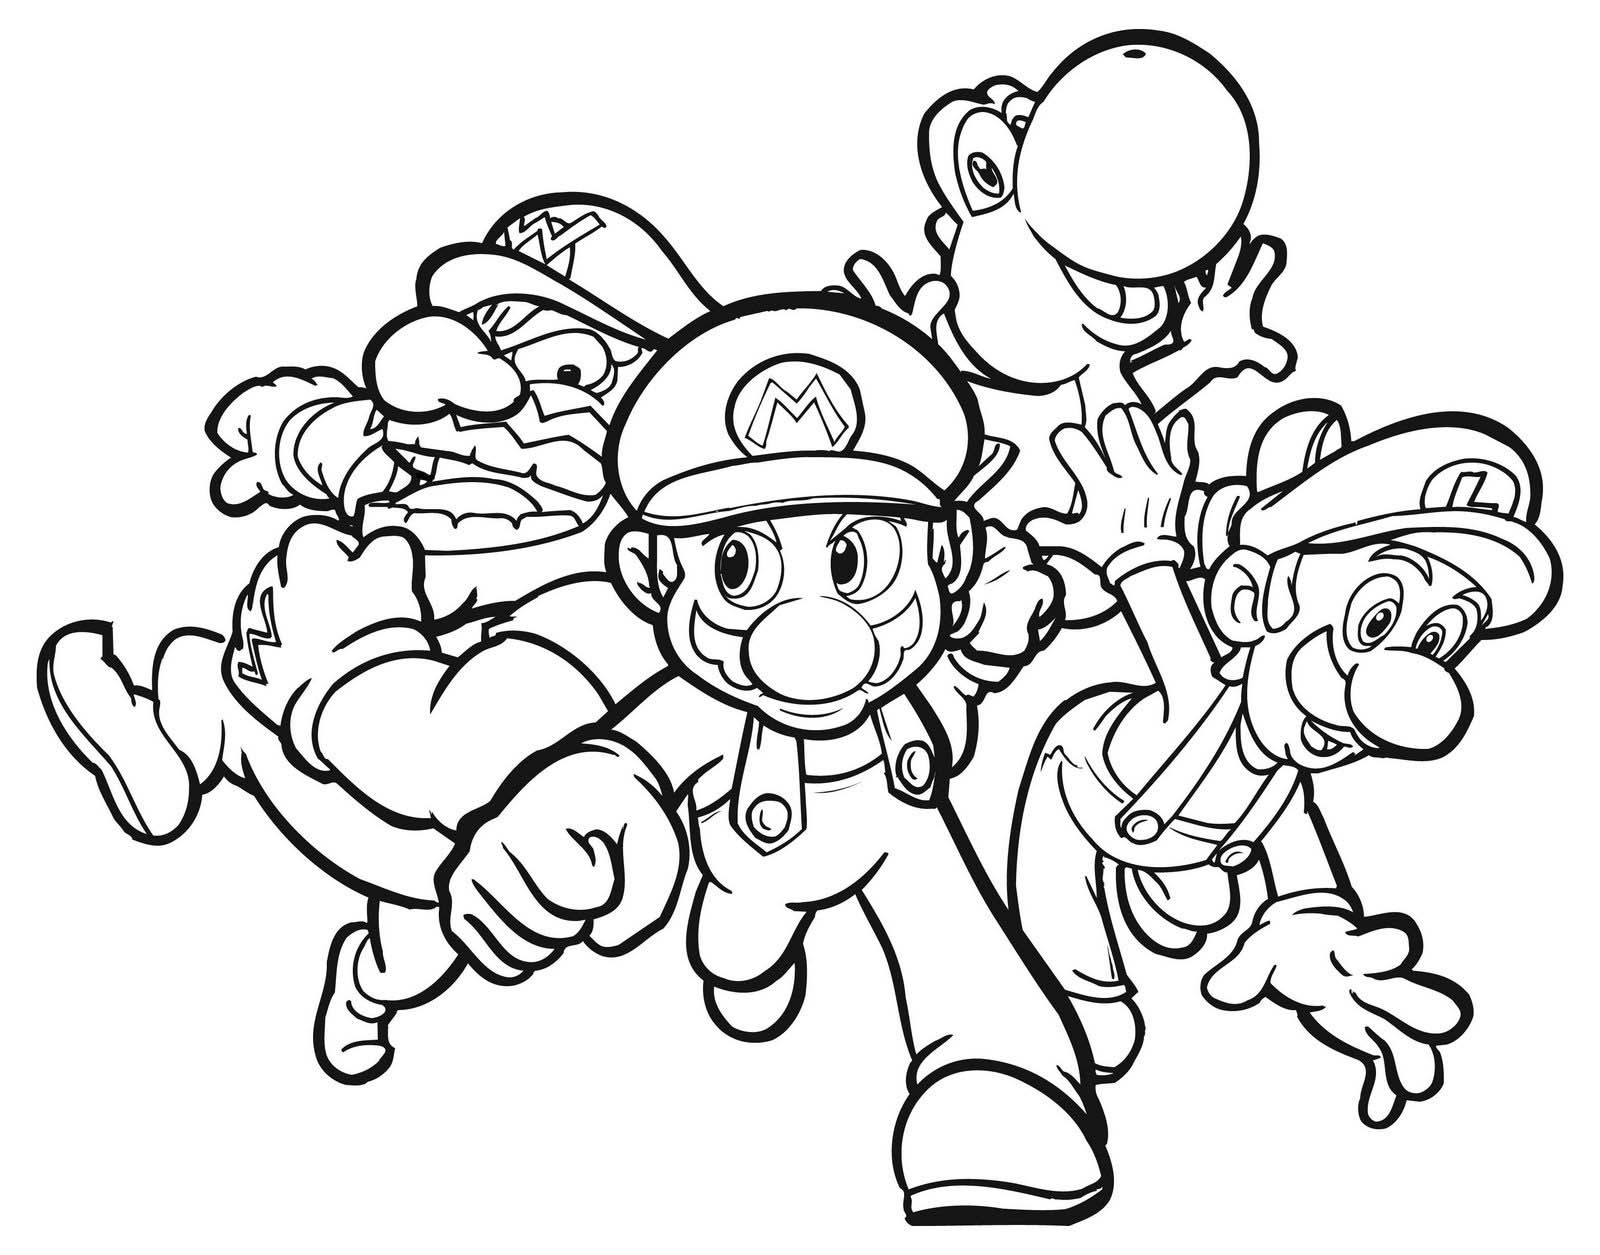 Mario Coloring Pages To Print Super Mario Coloring Pages Mario